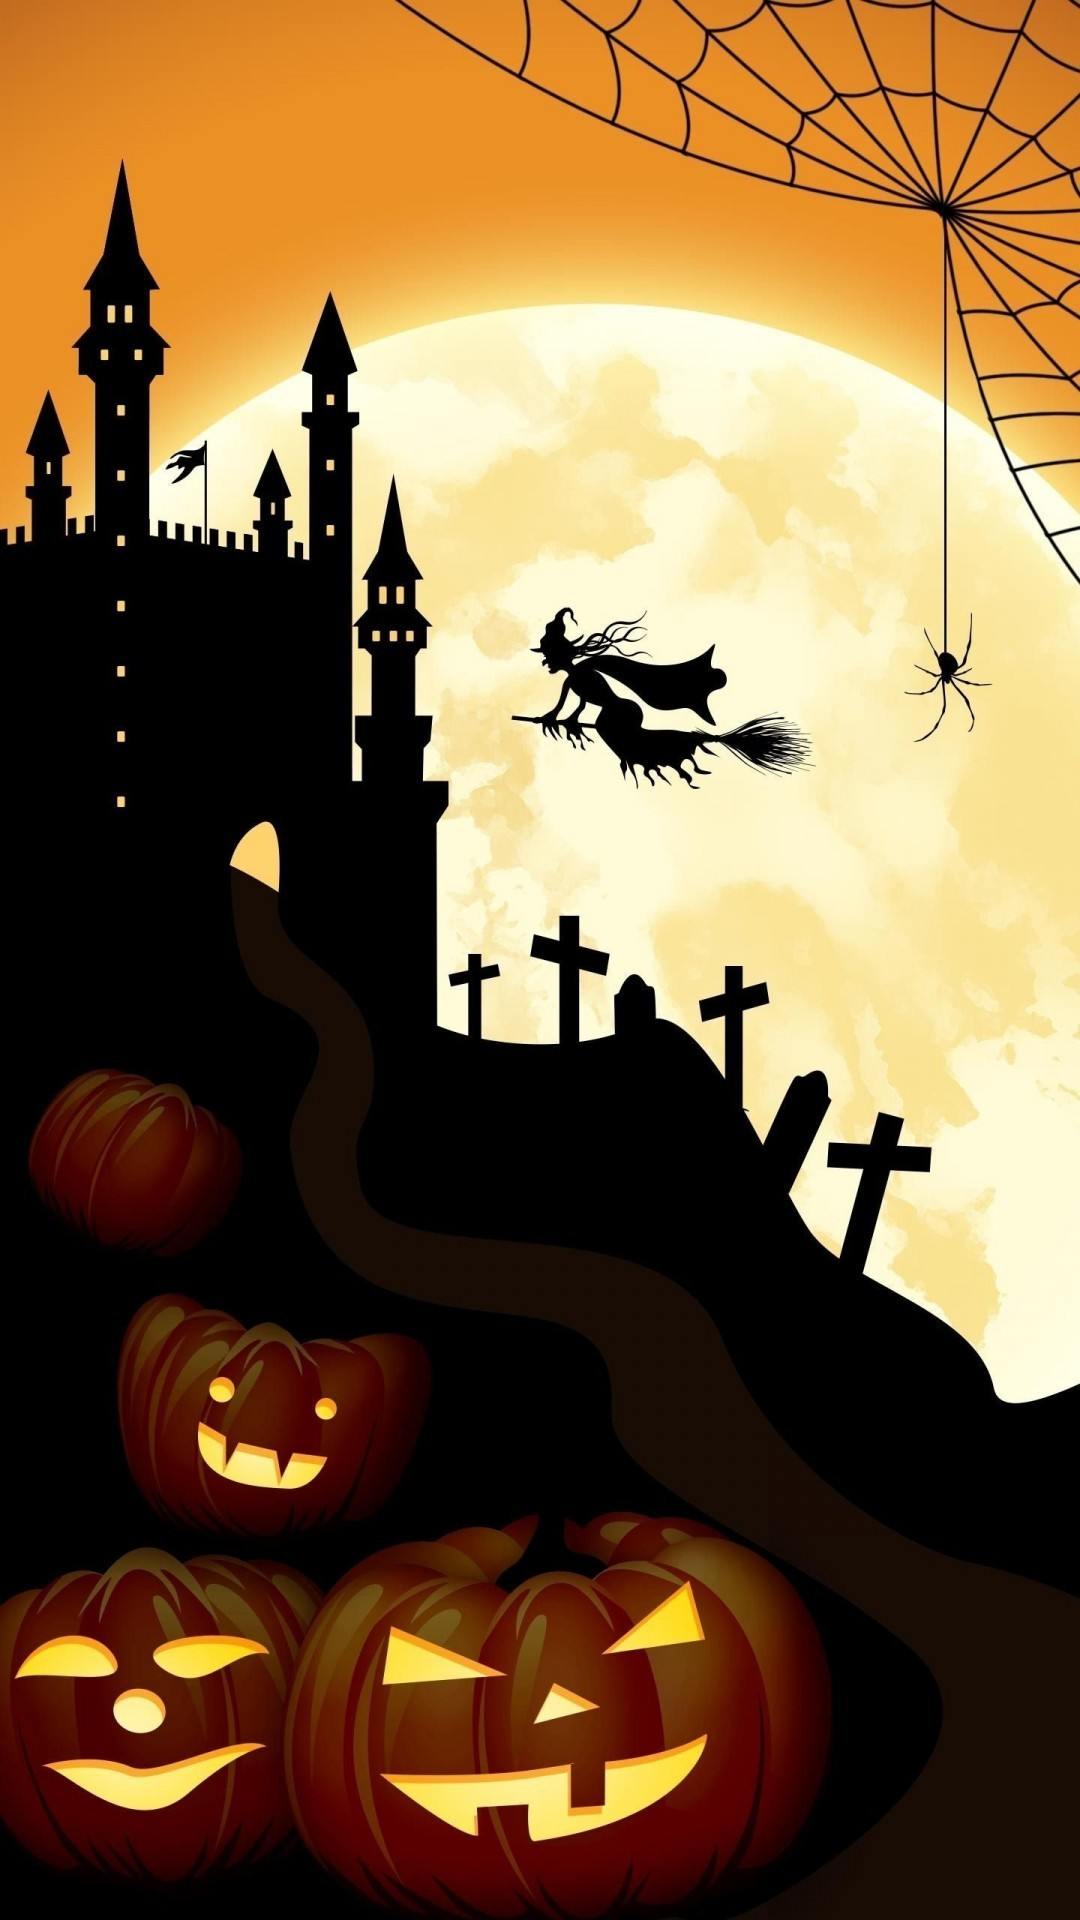 Res: 1080x1920, Halloween Bats and Castle